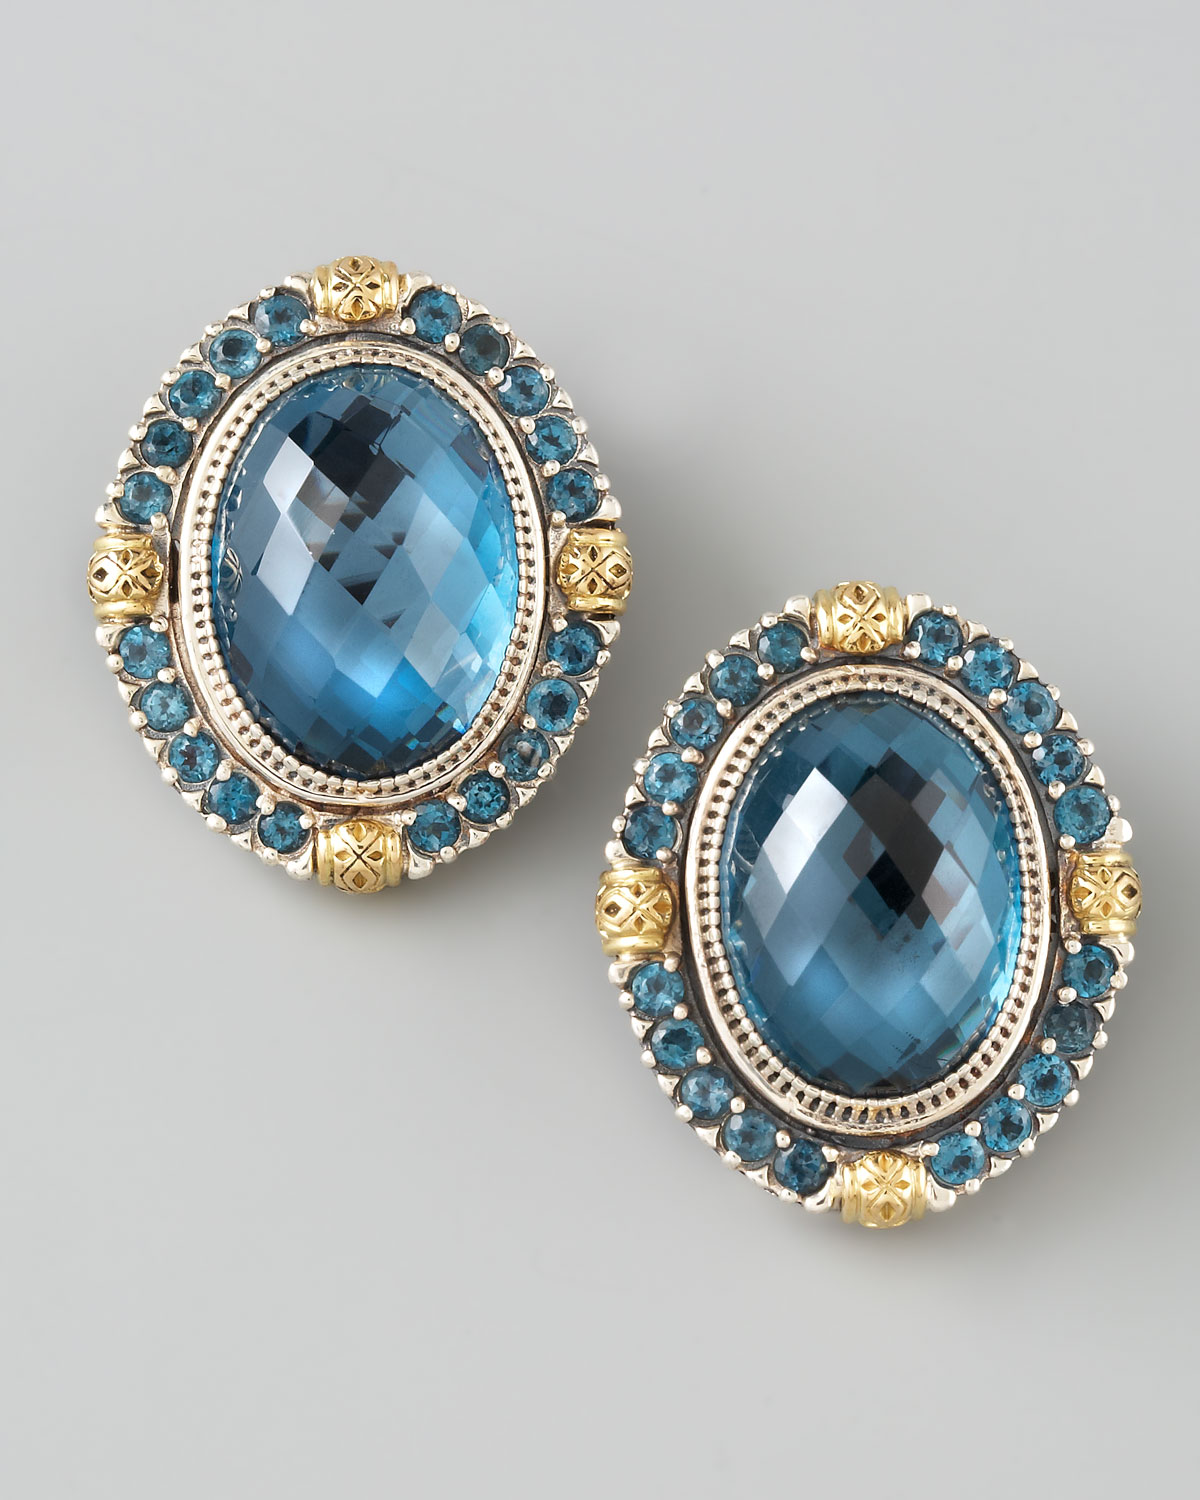 jewellery and sapphire jewels done blue international products divine topaz earrings crown deluxe jewelry